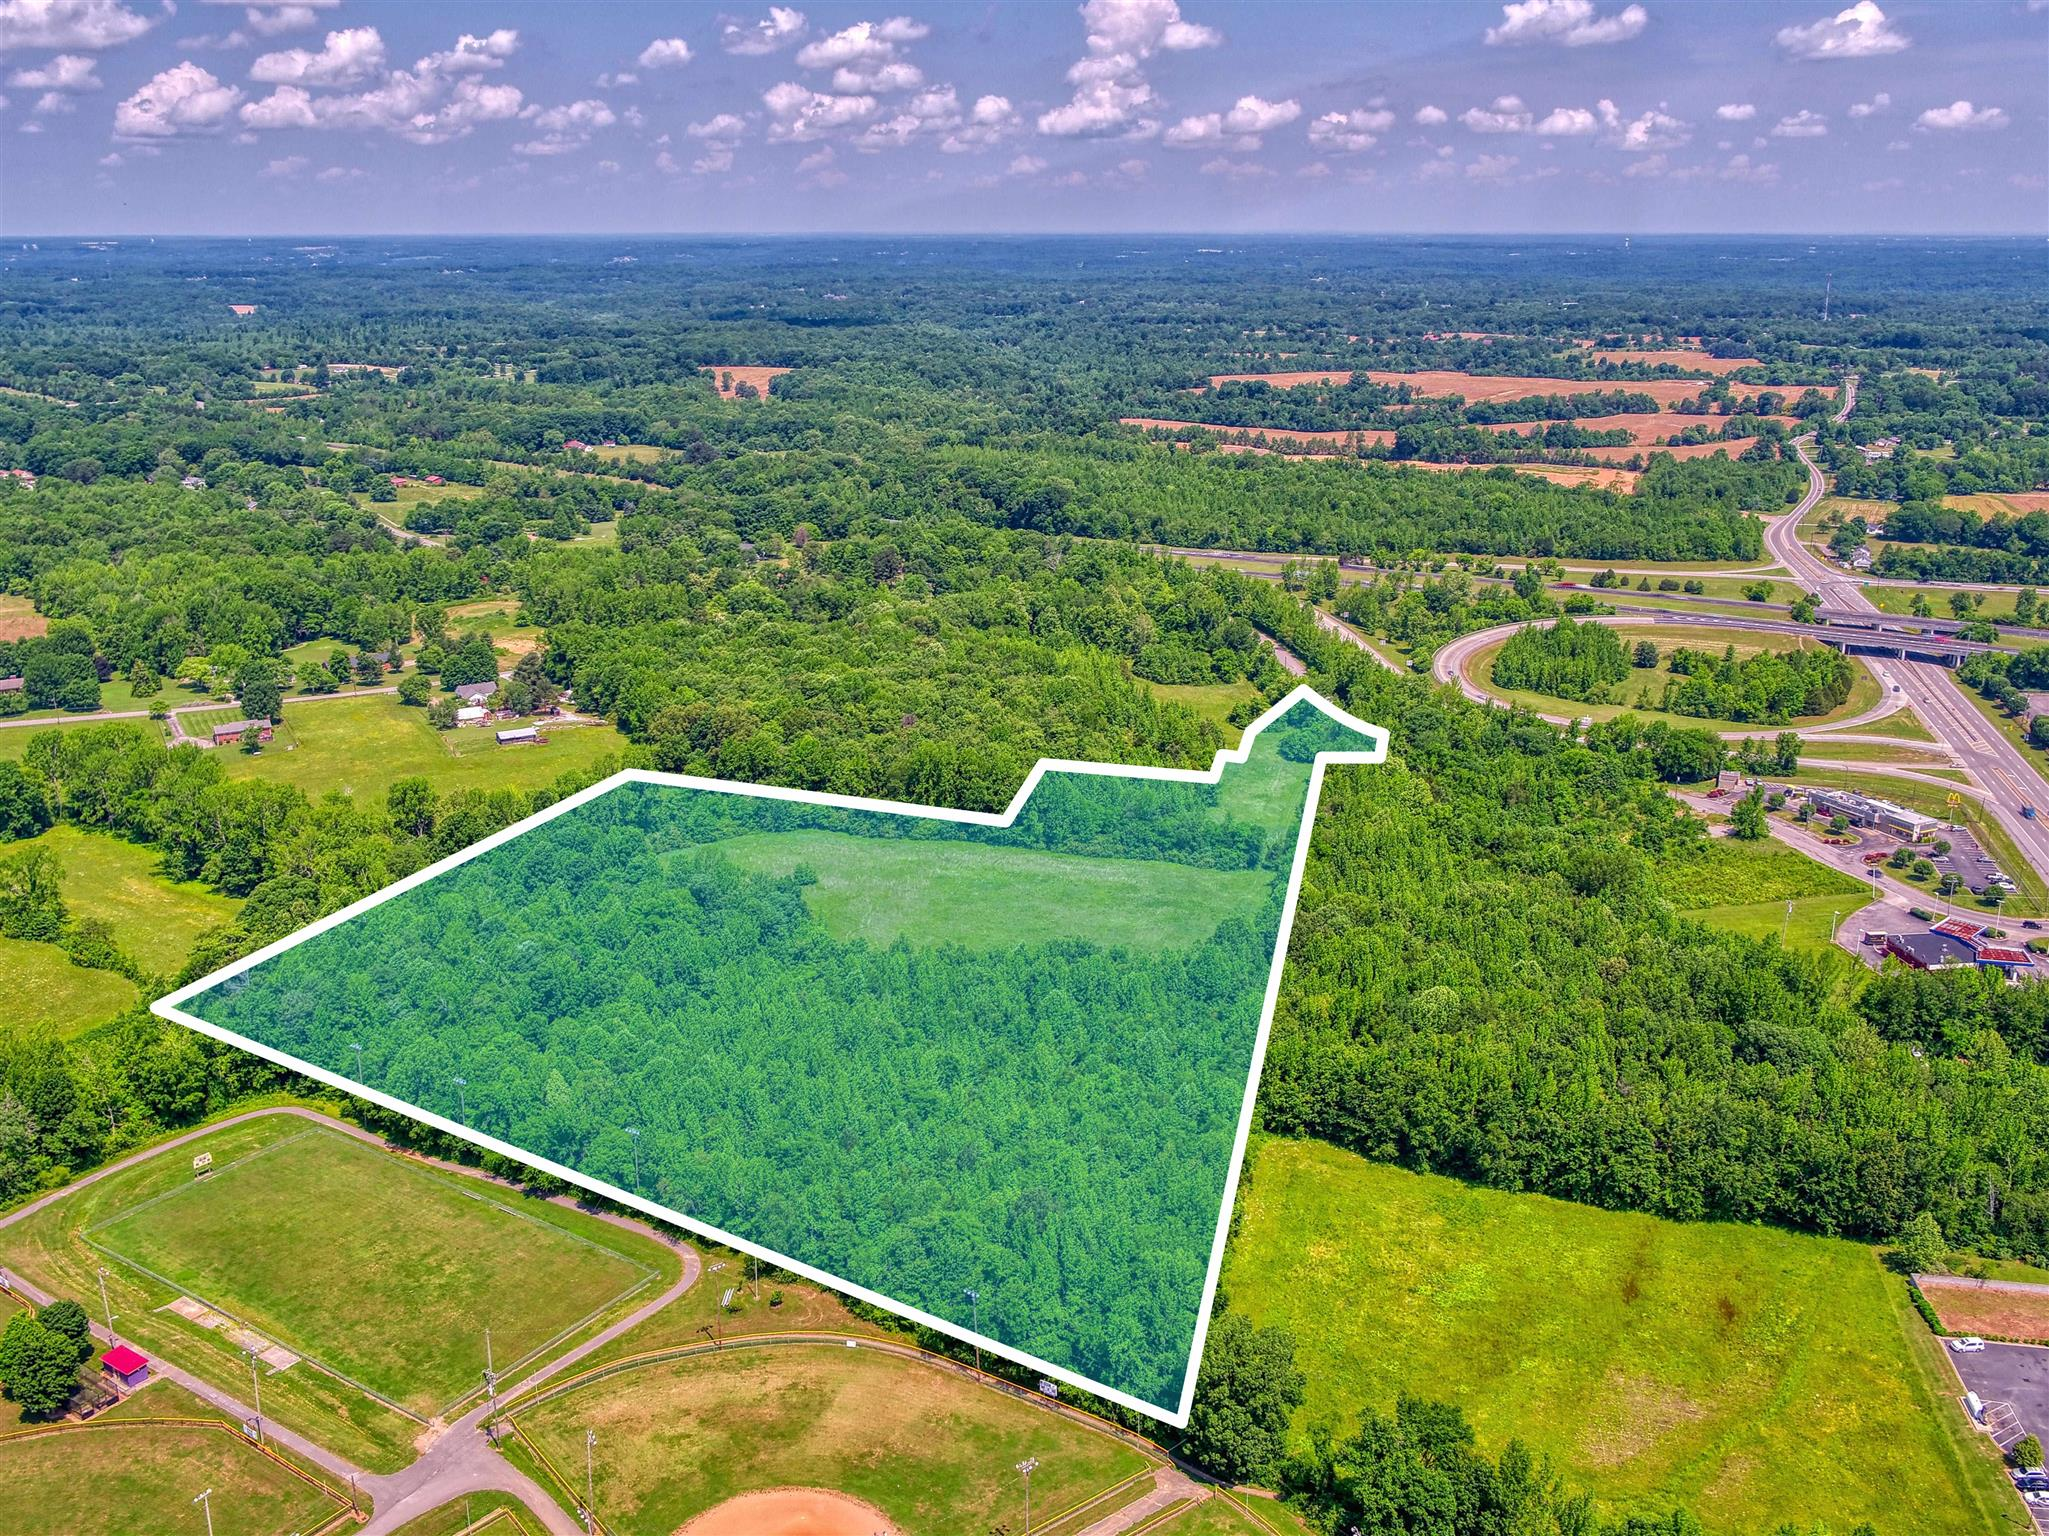 0 Eatons Creek Rd, Joelton, TN 37080 - Joelton, TN real estate listing